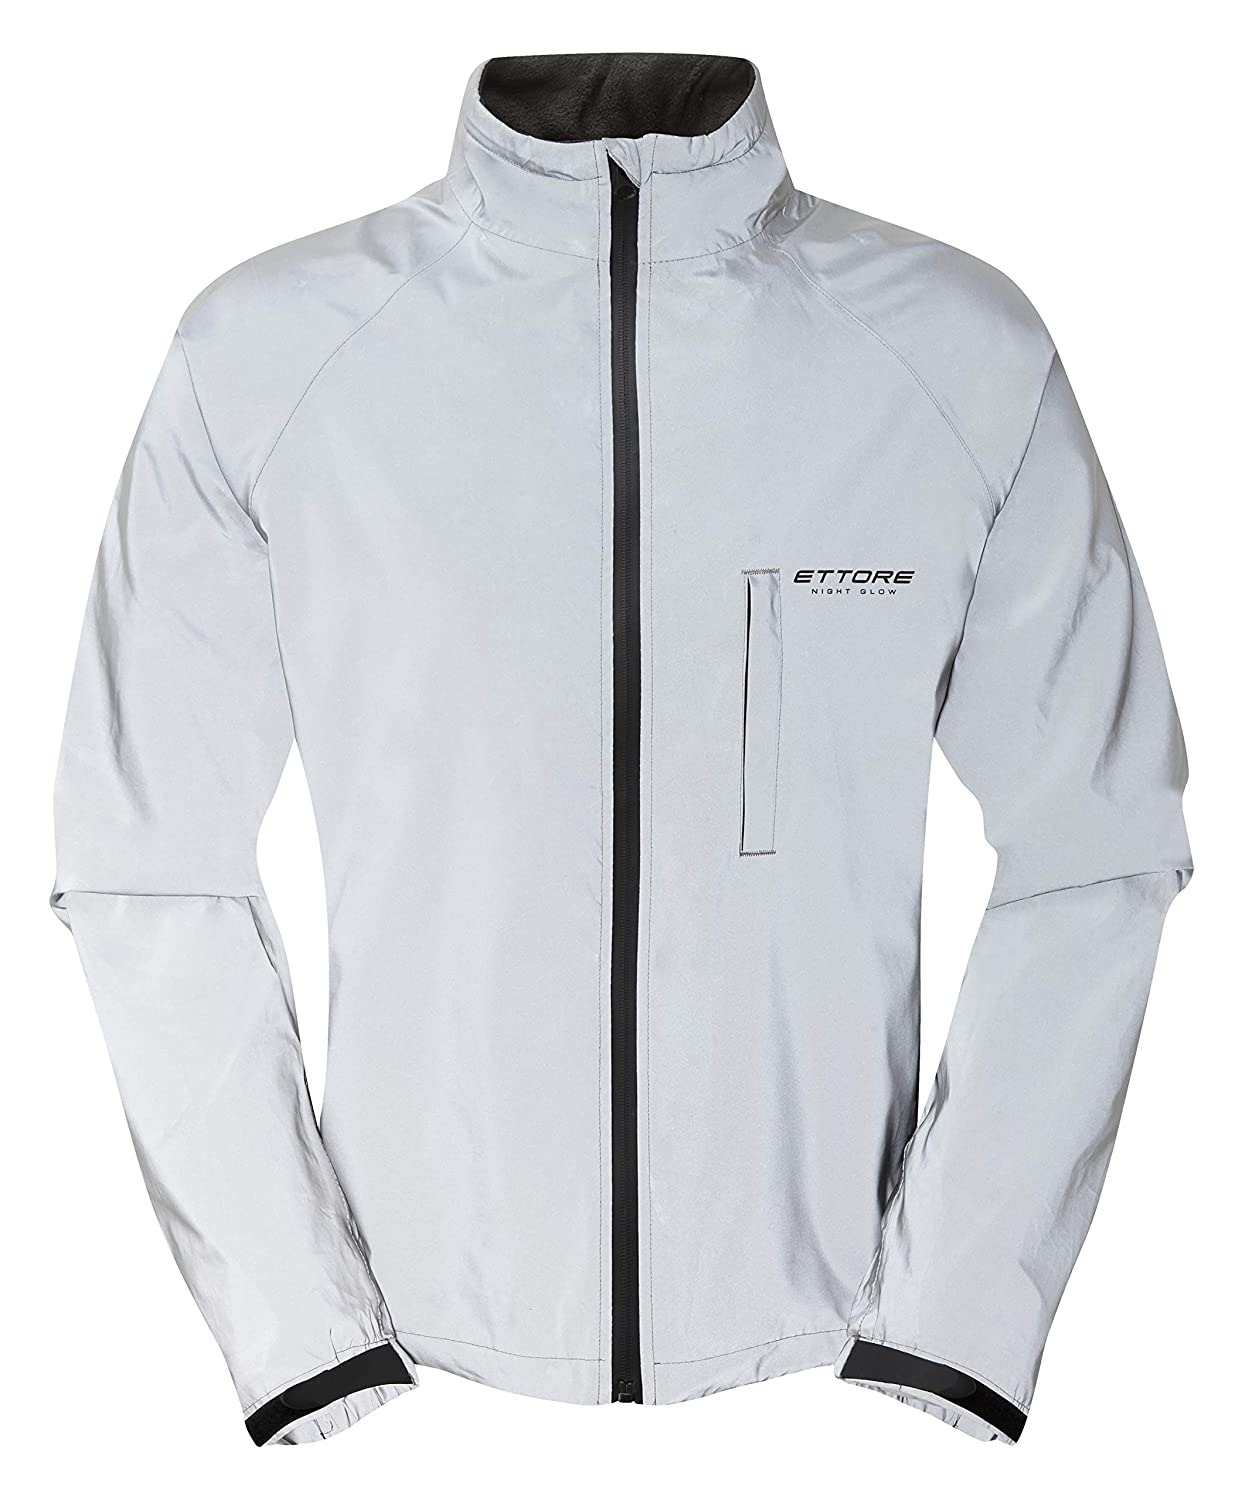 Reflective cycling rainjacket - what brand  Ettore 6d16b6d94